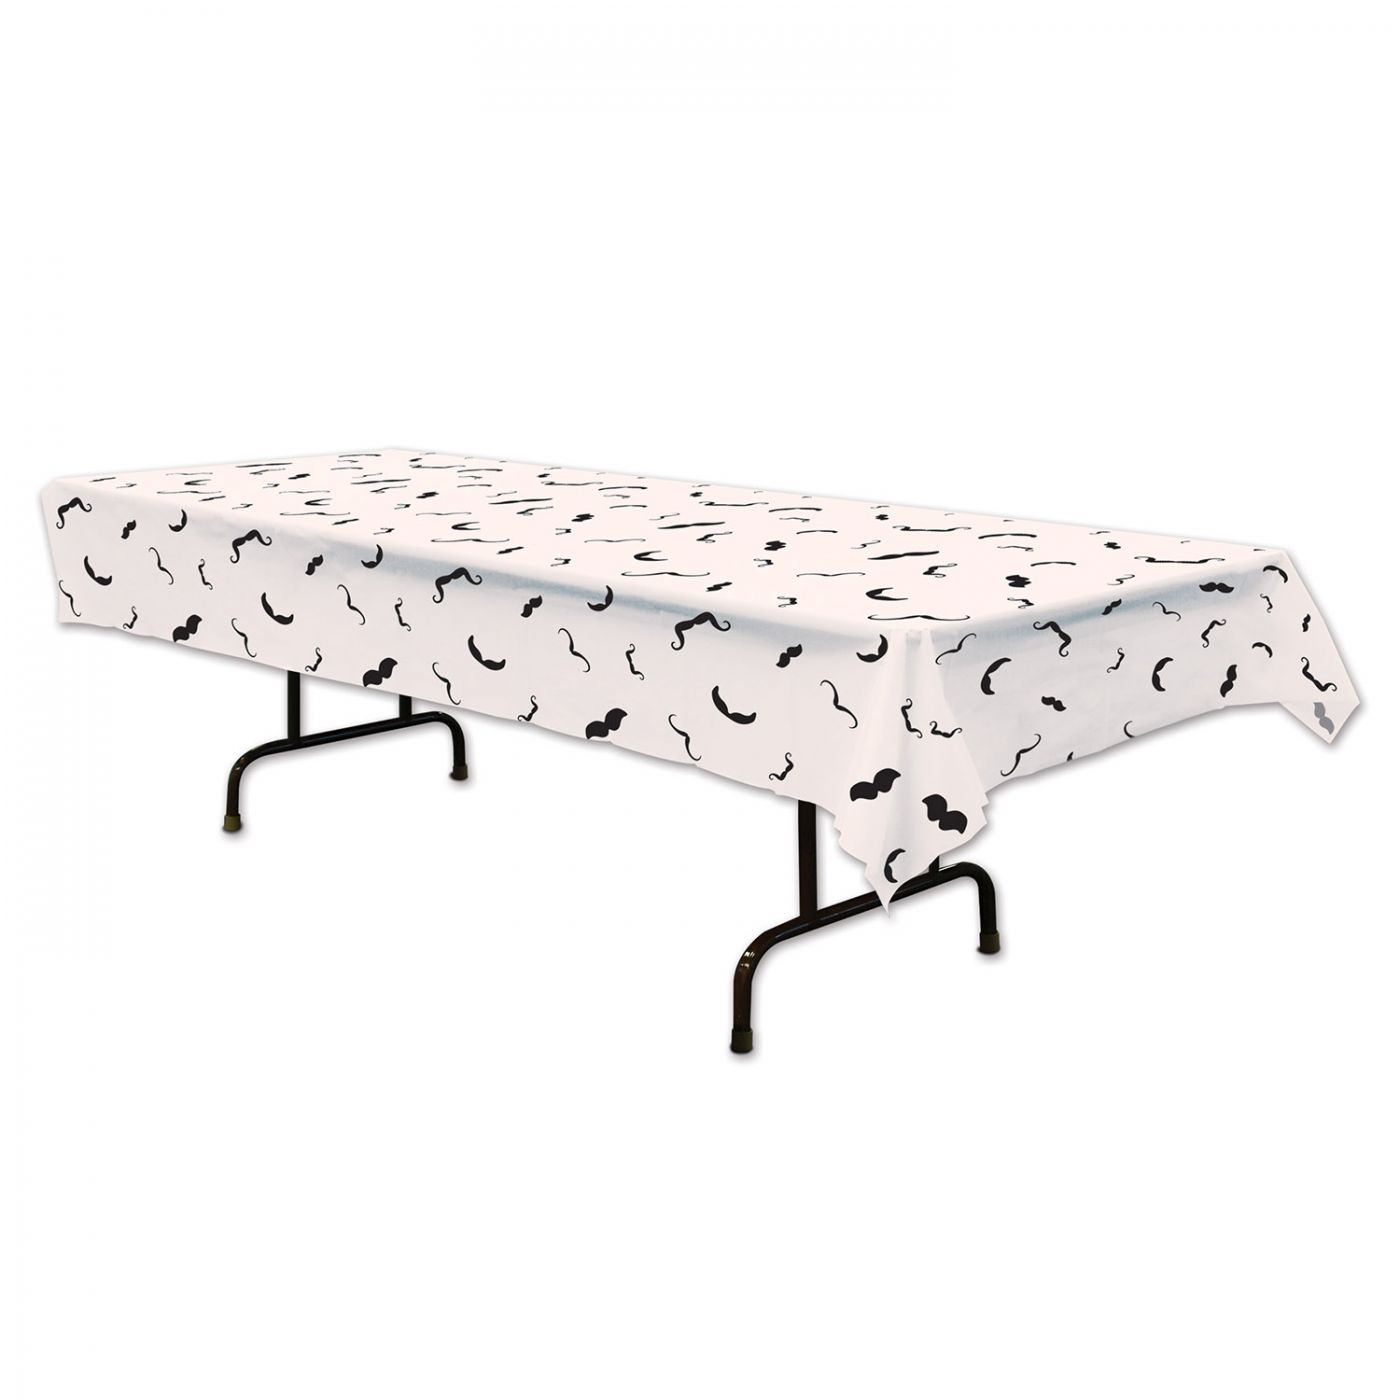 Moustache Tablecover image